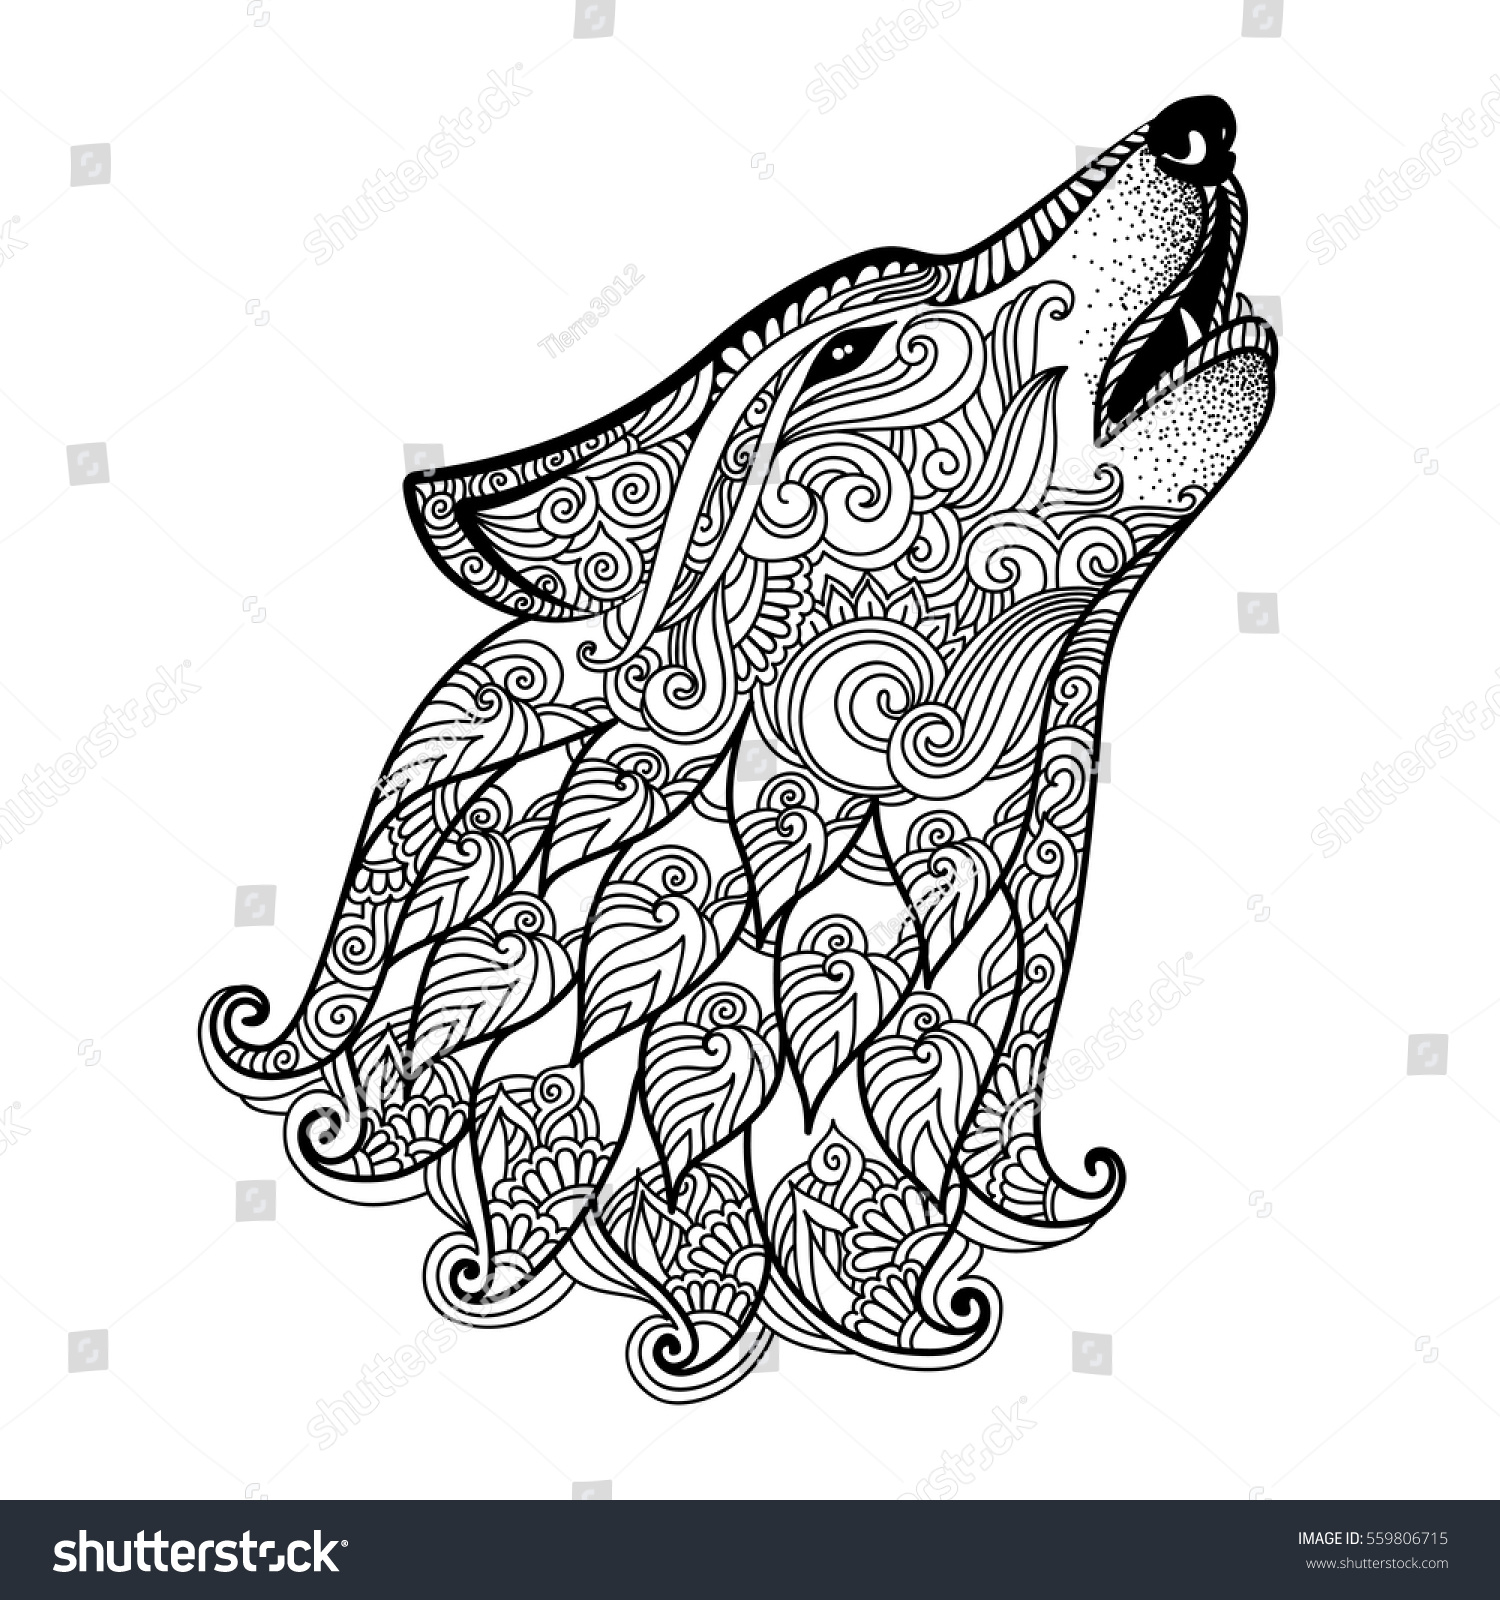 Hand Drawn Wolf Side View Ethnic Stock Vector 559806715 ...